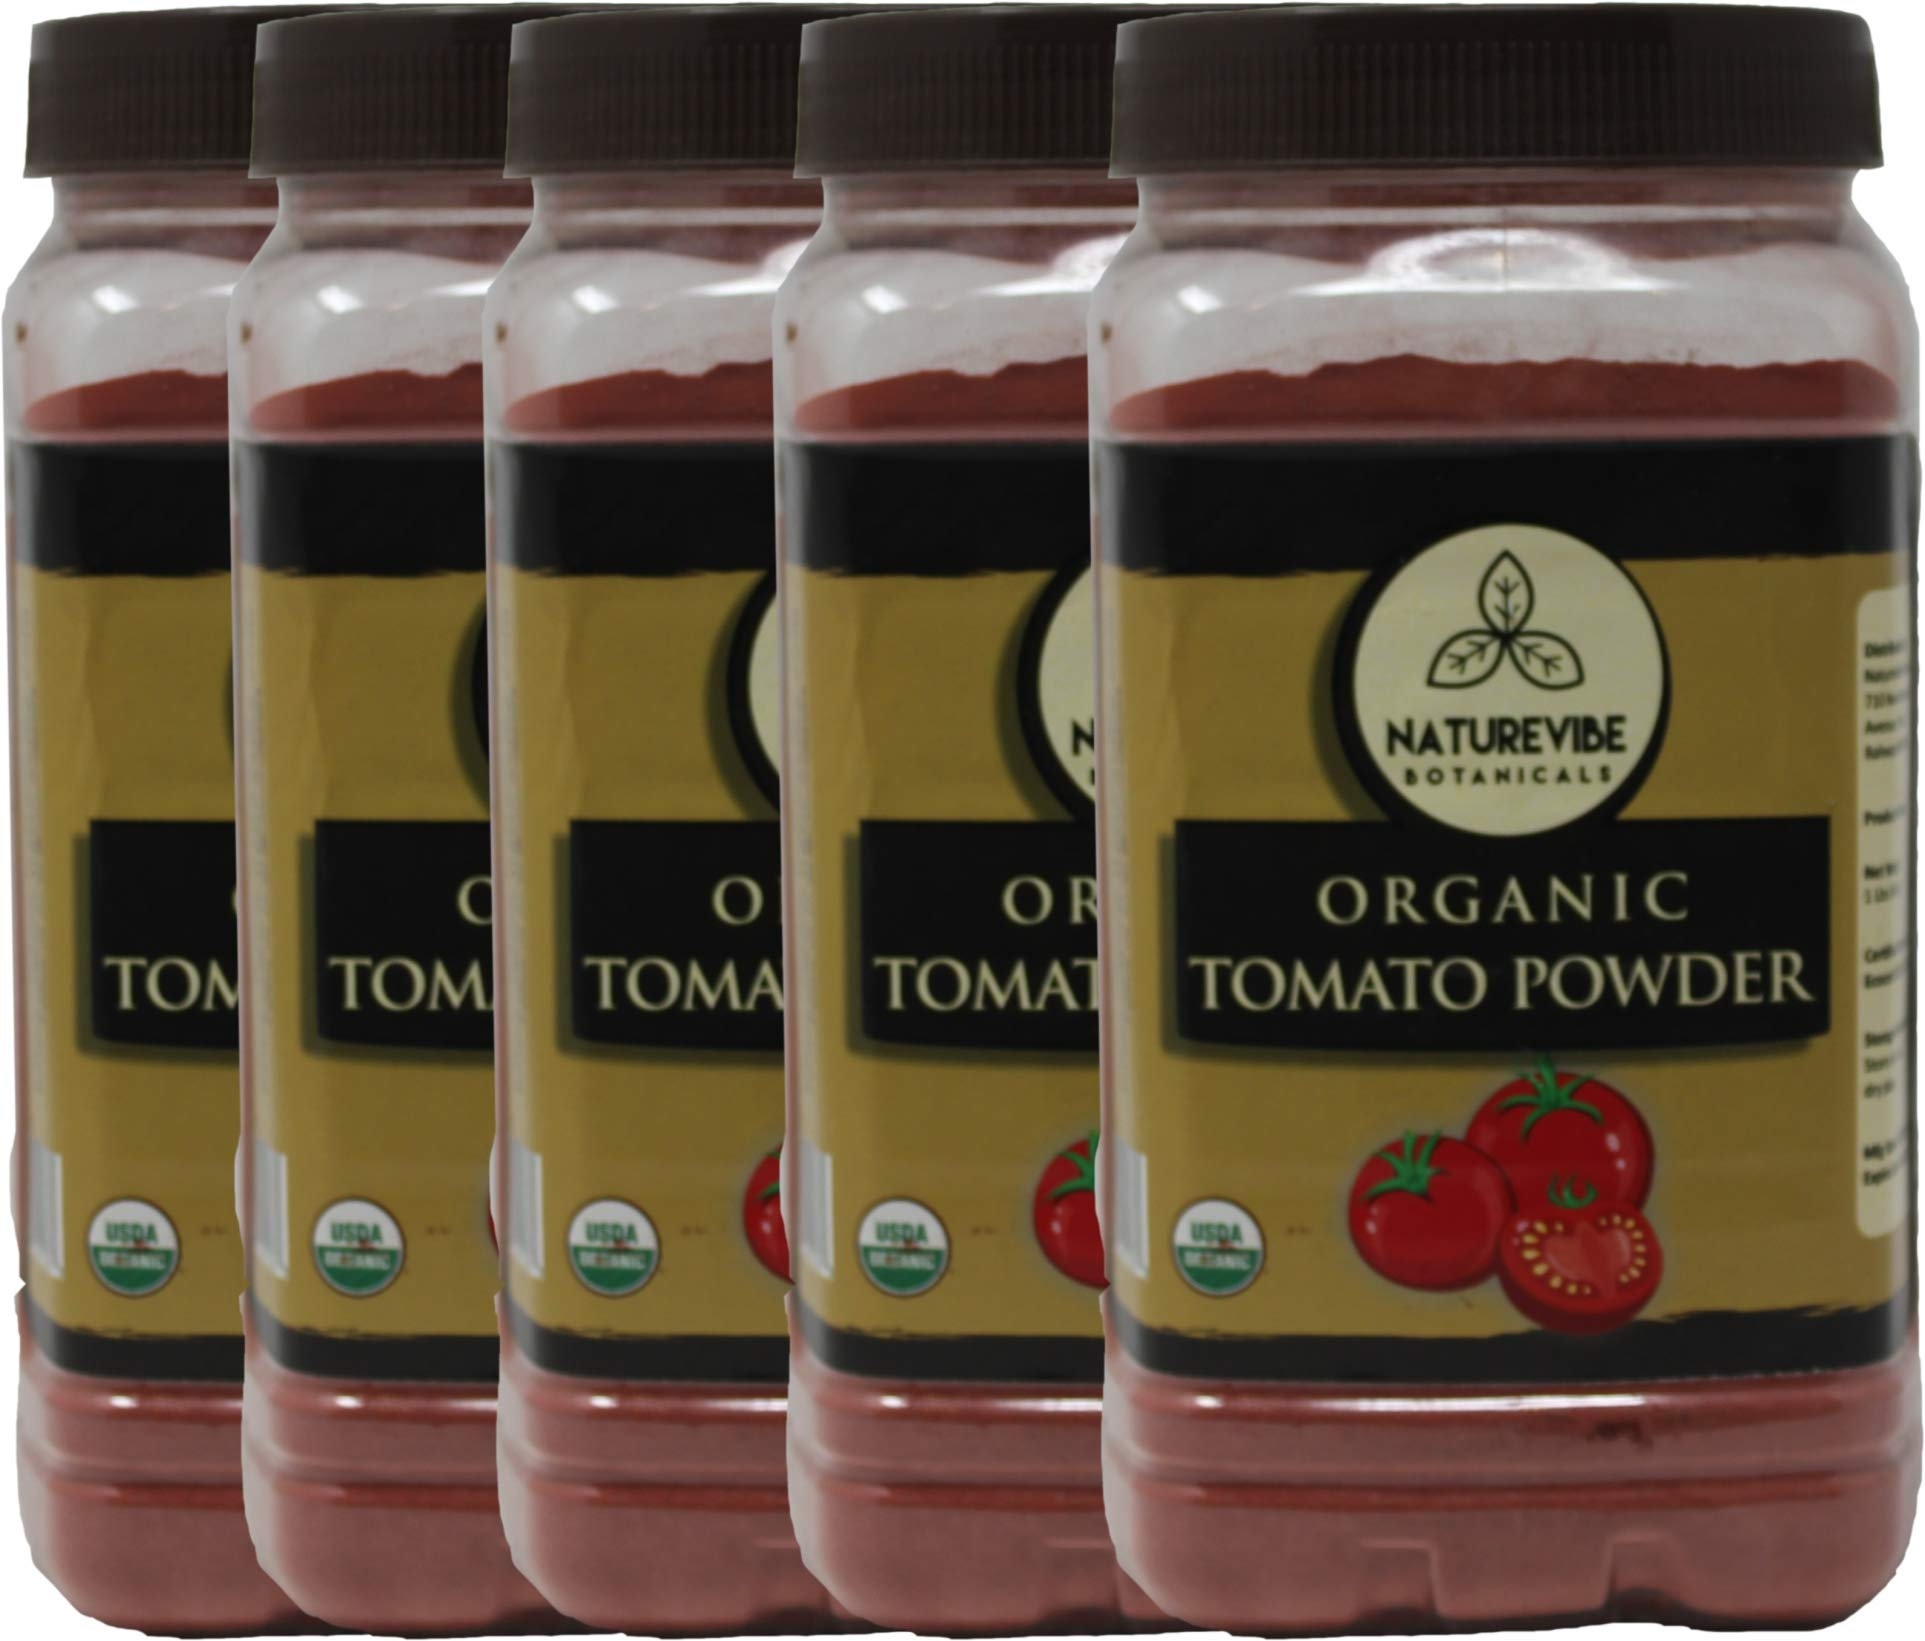 Naturevibe Botanicals Organic Tomato Powder 5Lb (5 Packs of 1lb each) | Non GMO | Boosts Digestion| Adds flavour and taste....